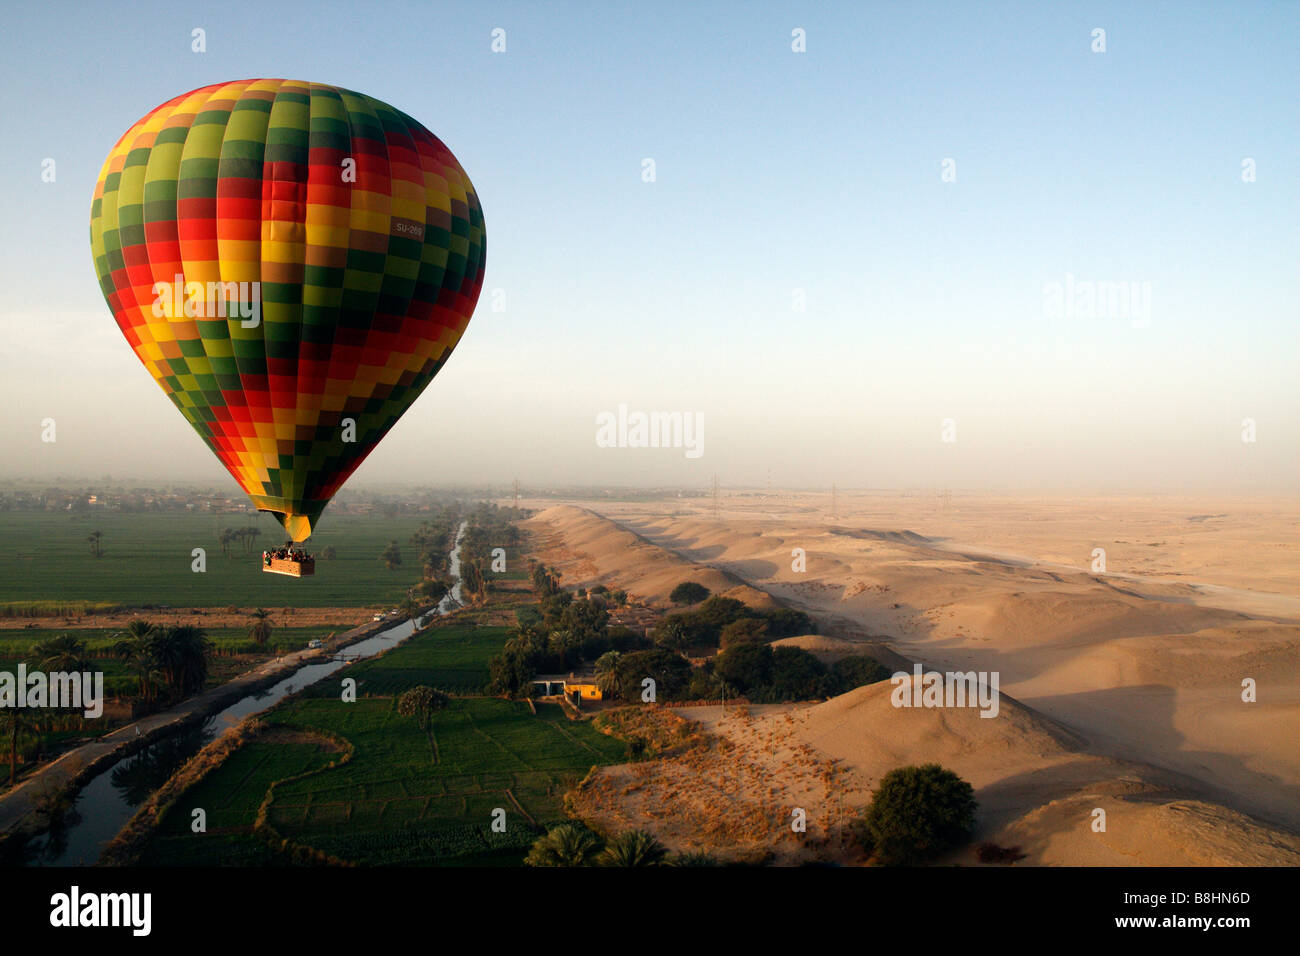 Hot air balloons flying over the desert villages and fields near Habu Temple near Luxor on the Nile in Egypt - Stock Image